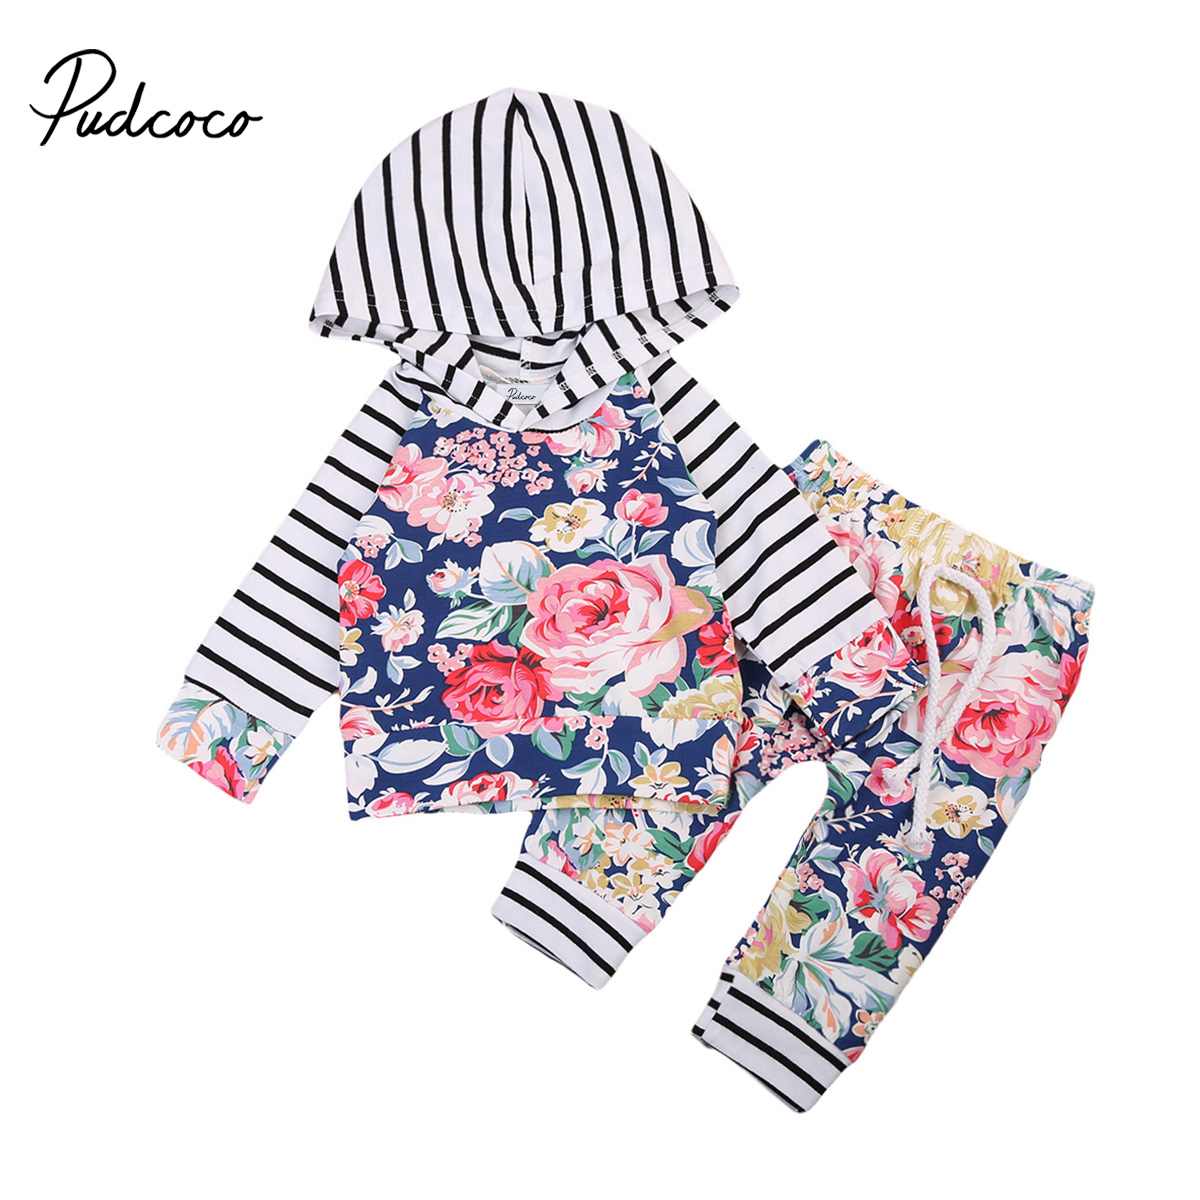 Toddler Kids Baby Girl Hooded Sweatshirt Autumn Winter Clothing Top+Long Pants 2Pcs Outfits Clothes Set floral baby girls clothes long sleeve sweatshirt pants outfits 2pcs hooded clothes set